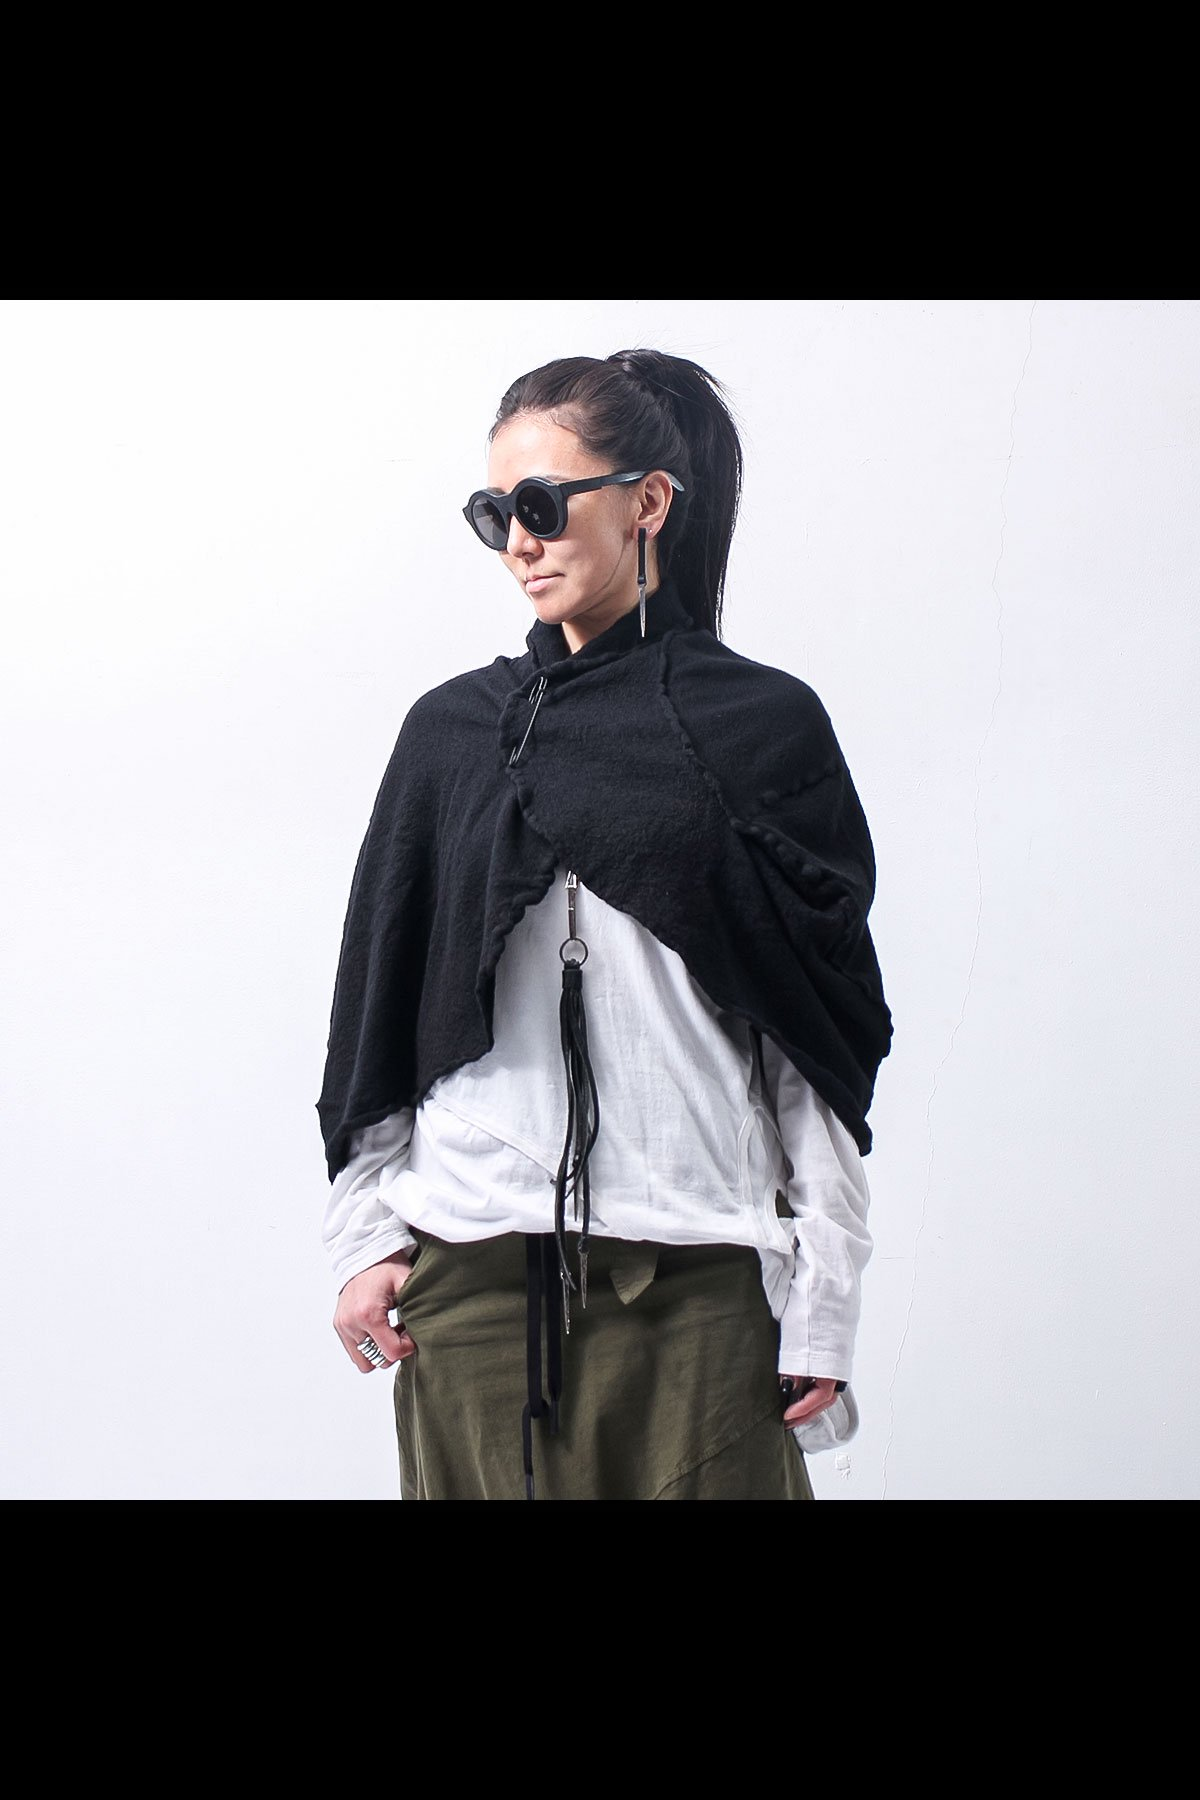 <img class='new_mark_img1' src='https://img.shop-pro.jp/img/new/icons8.gif' style='border:none;display:inline;margin:0px;padding:0px;width:auto;' />SPRING KNIT SHORT CAPE 268 7102_BLACK